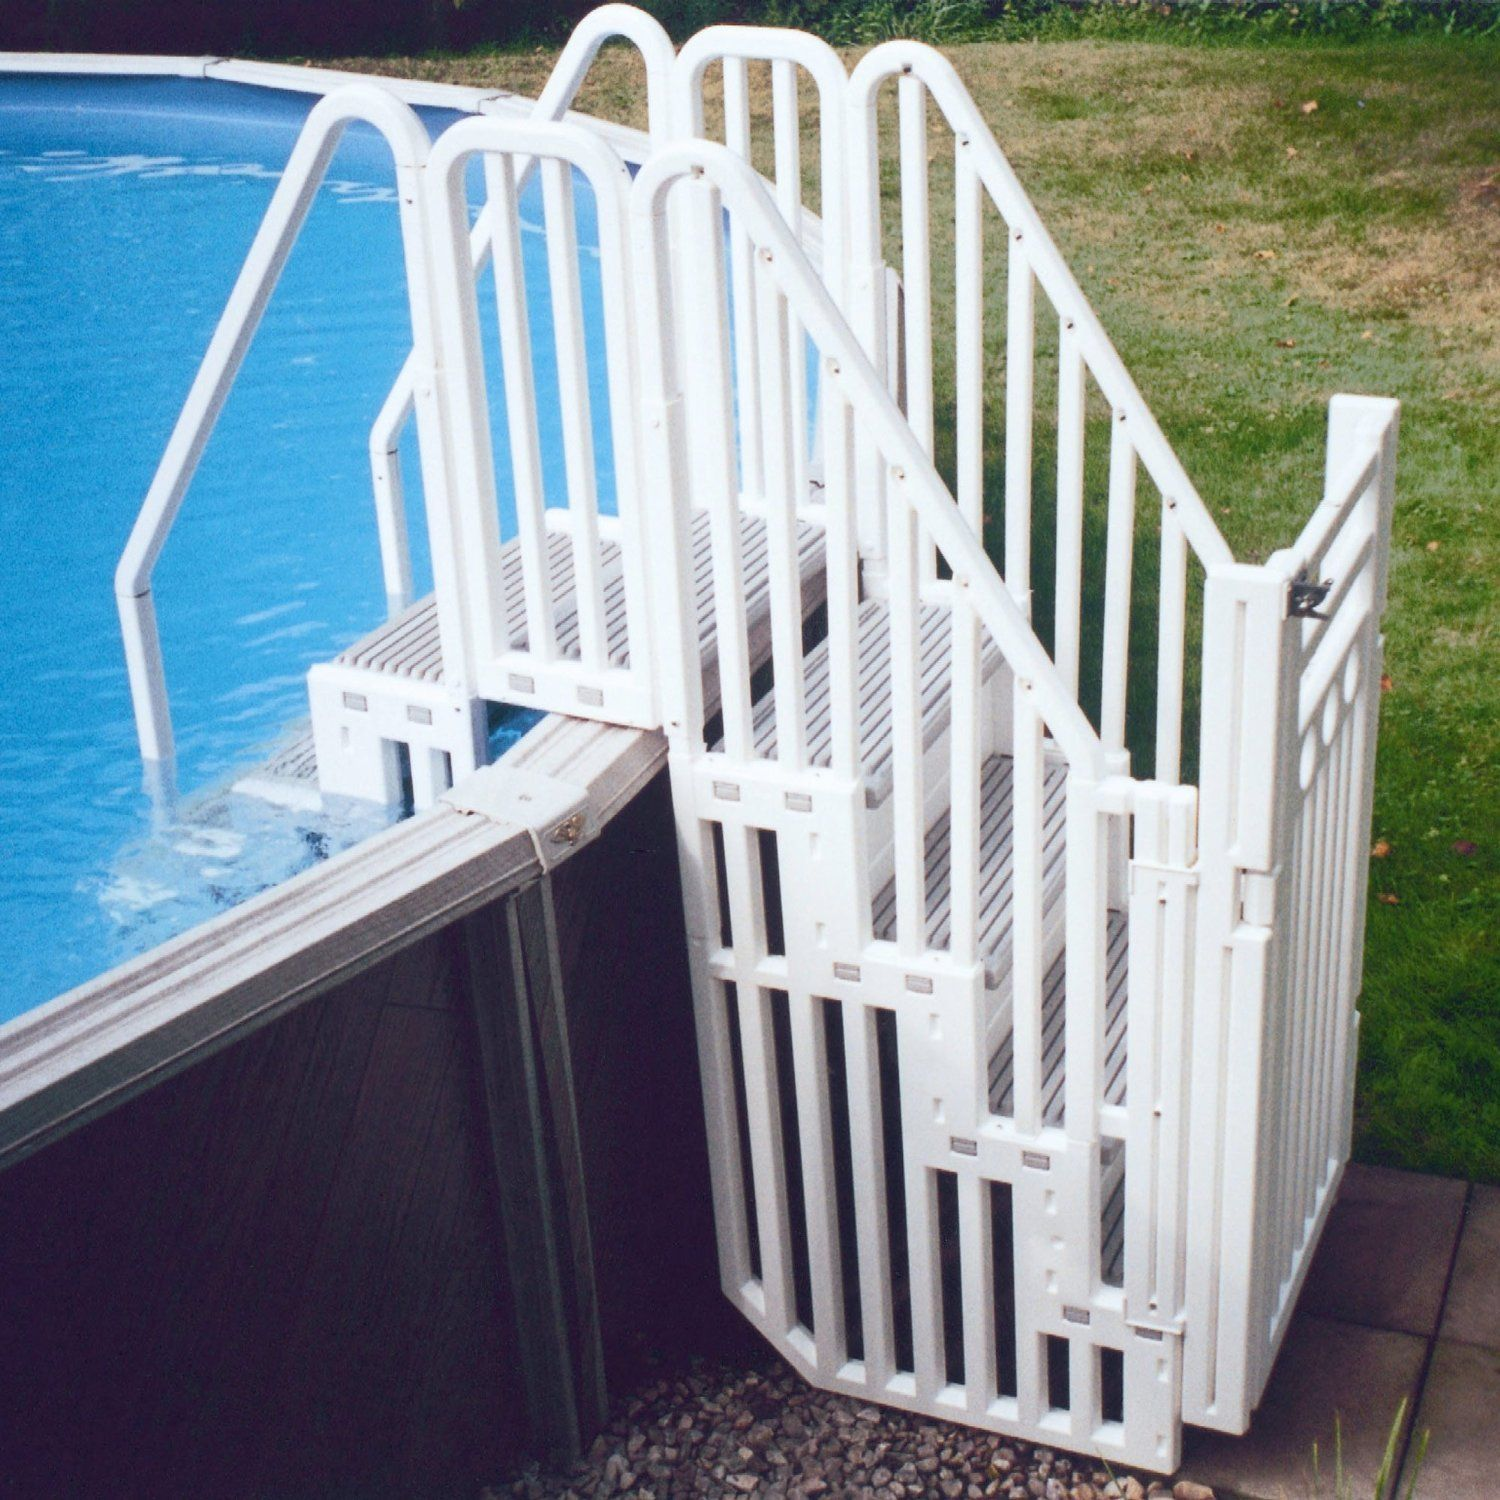 Best above ground pool ladders reviews the pool cleaner - Above ground pool platform ...